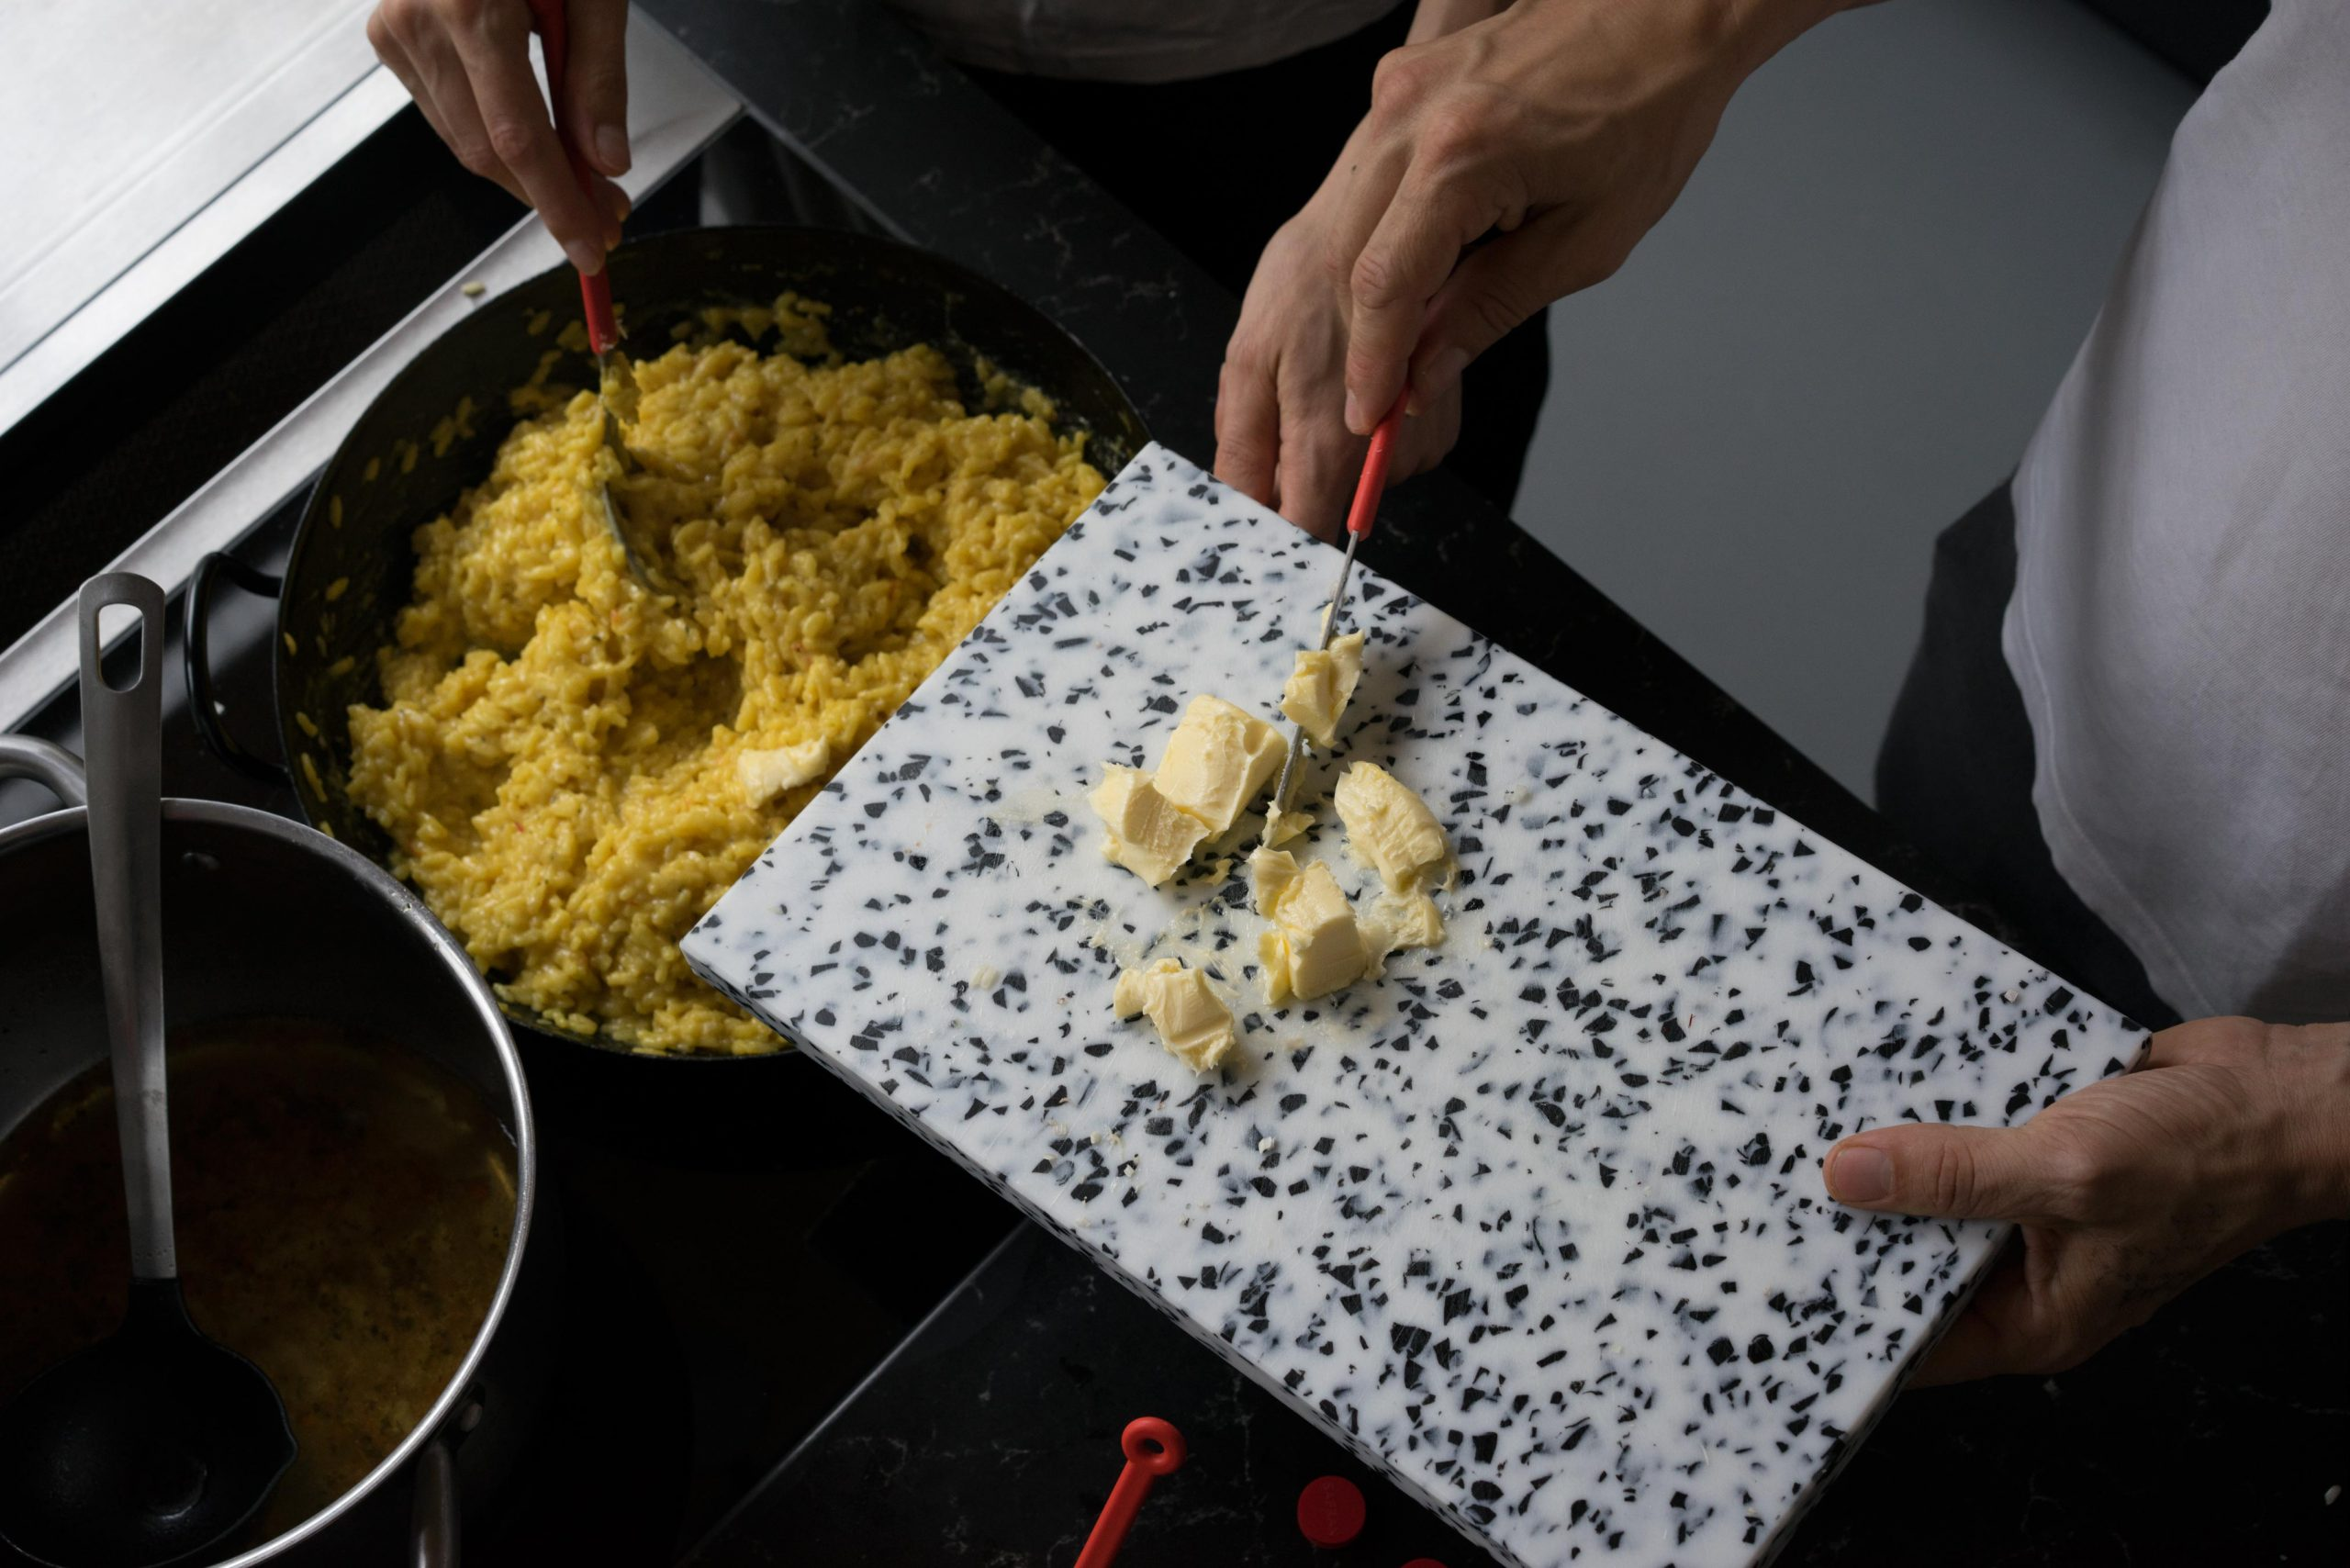 Adding butter to the Saffron risotto